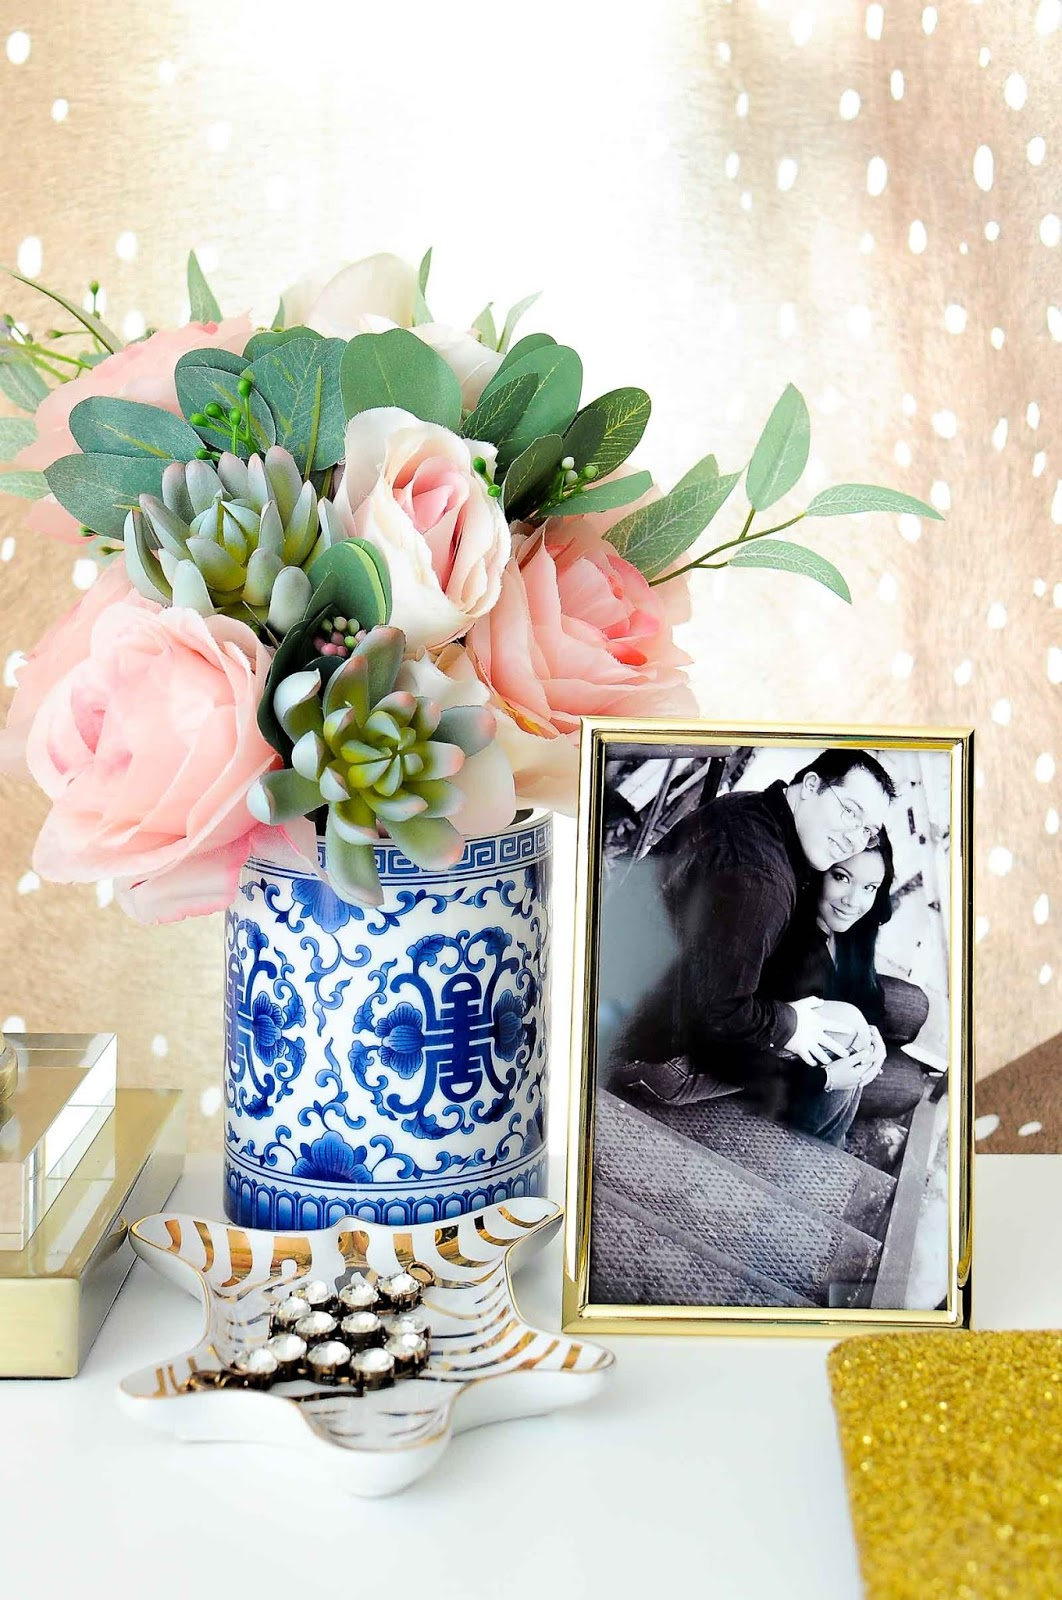 Pink roses and faux succulents in a blue and white ginger jar chinoiserie vase on a white desk in a feminine home office space.